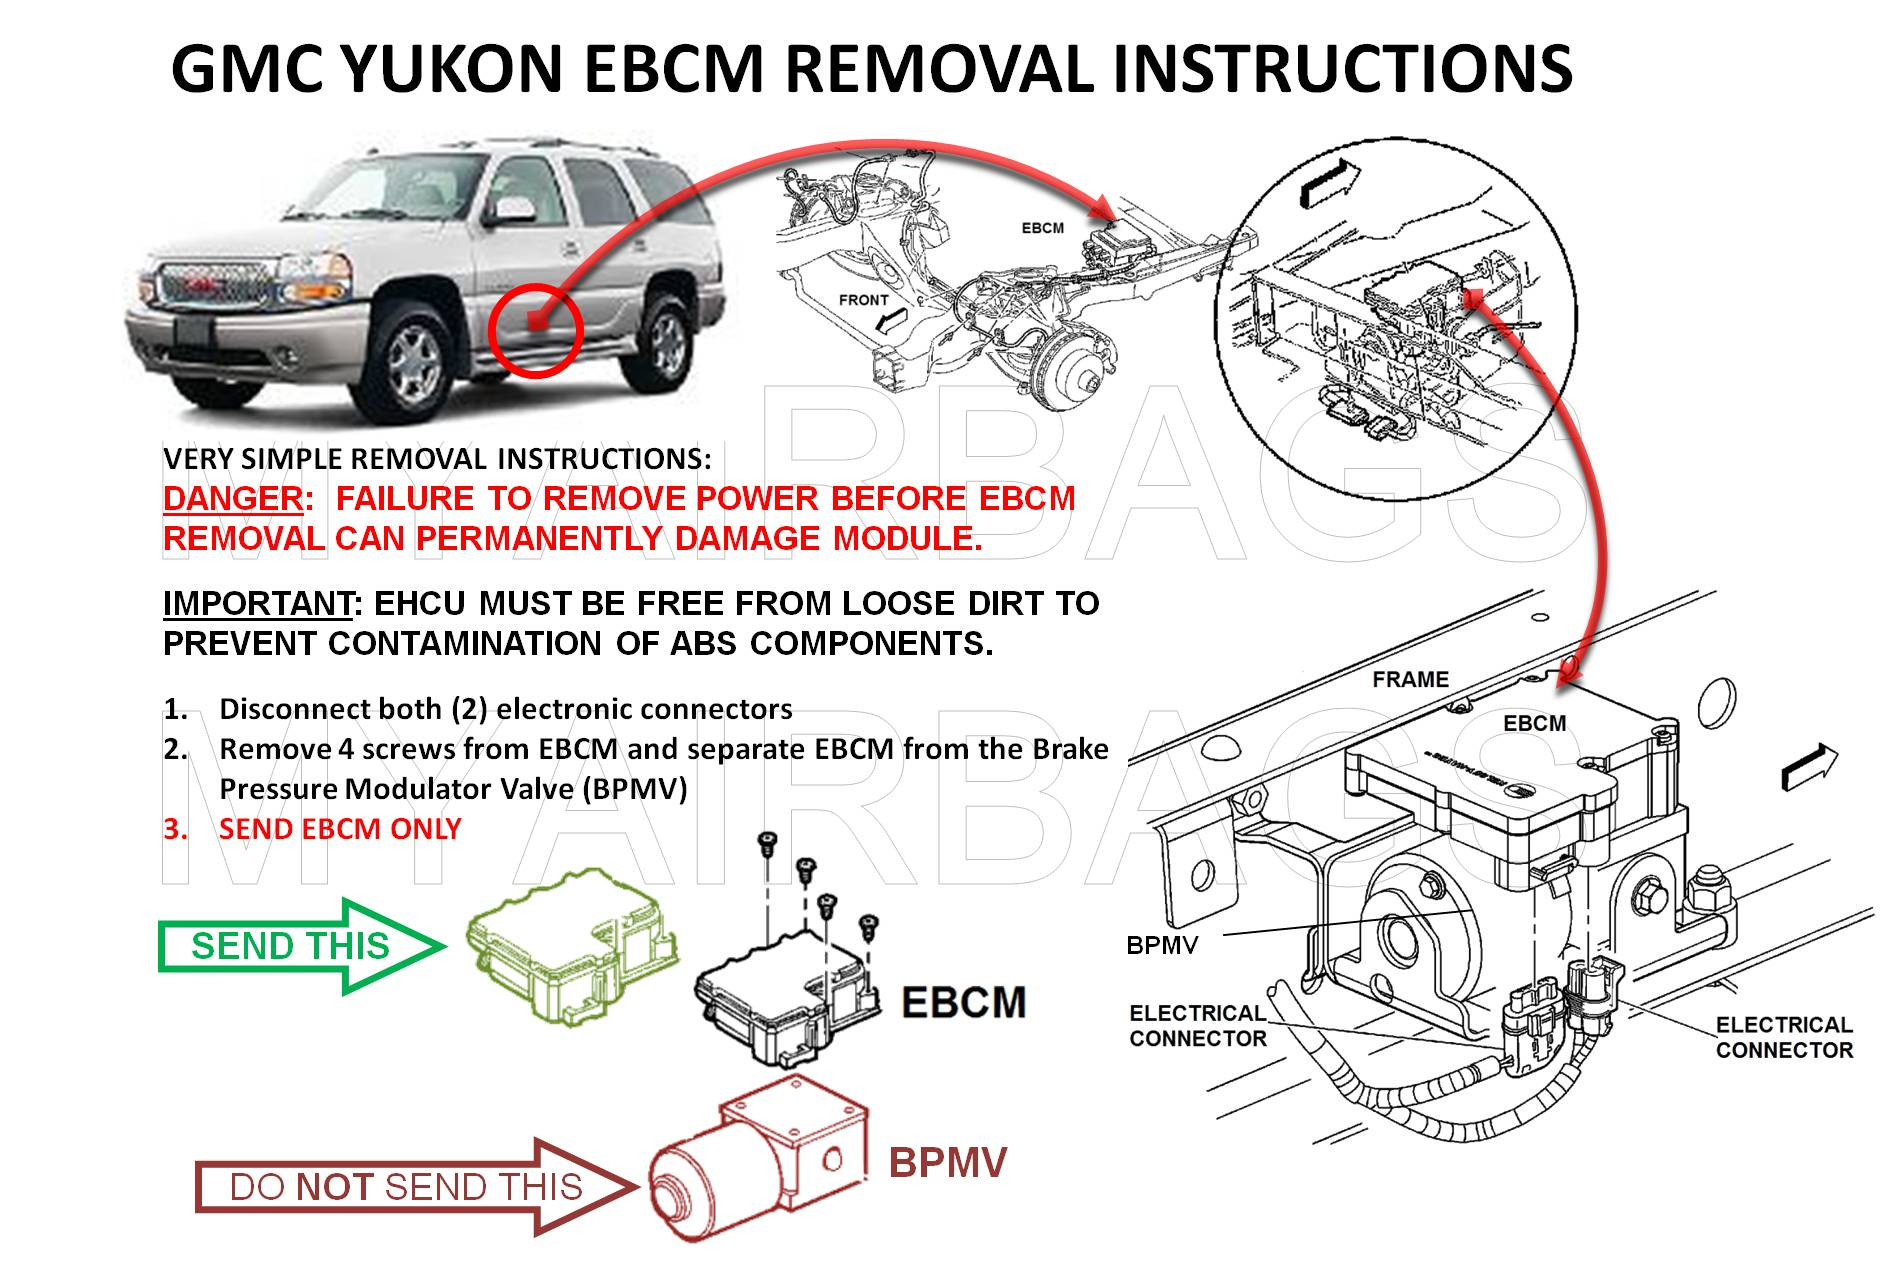 2005 gmc sierra 1500 wiring diagram with Abs Kh Select Vehicle on Abs Brake Line Routing 510601 further 7vfno Need Diagram Stereo Wireing 2001 Chevy Tah in addition Watch together with Chevrolet Silverado Mk1 First Generation 1999 2007 Fuse Box Diagram together with Daewoo 2 0 Photo 17.